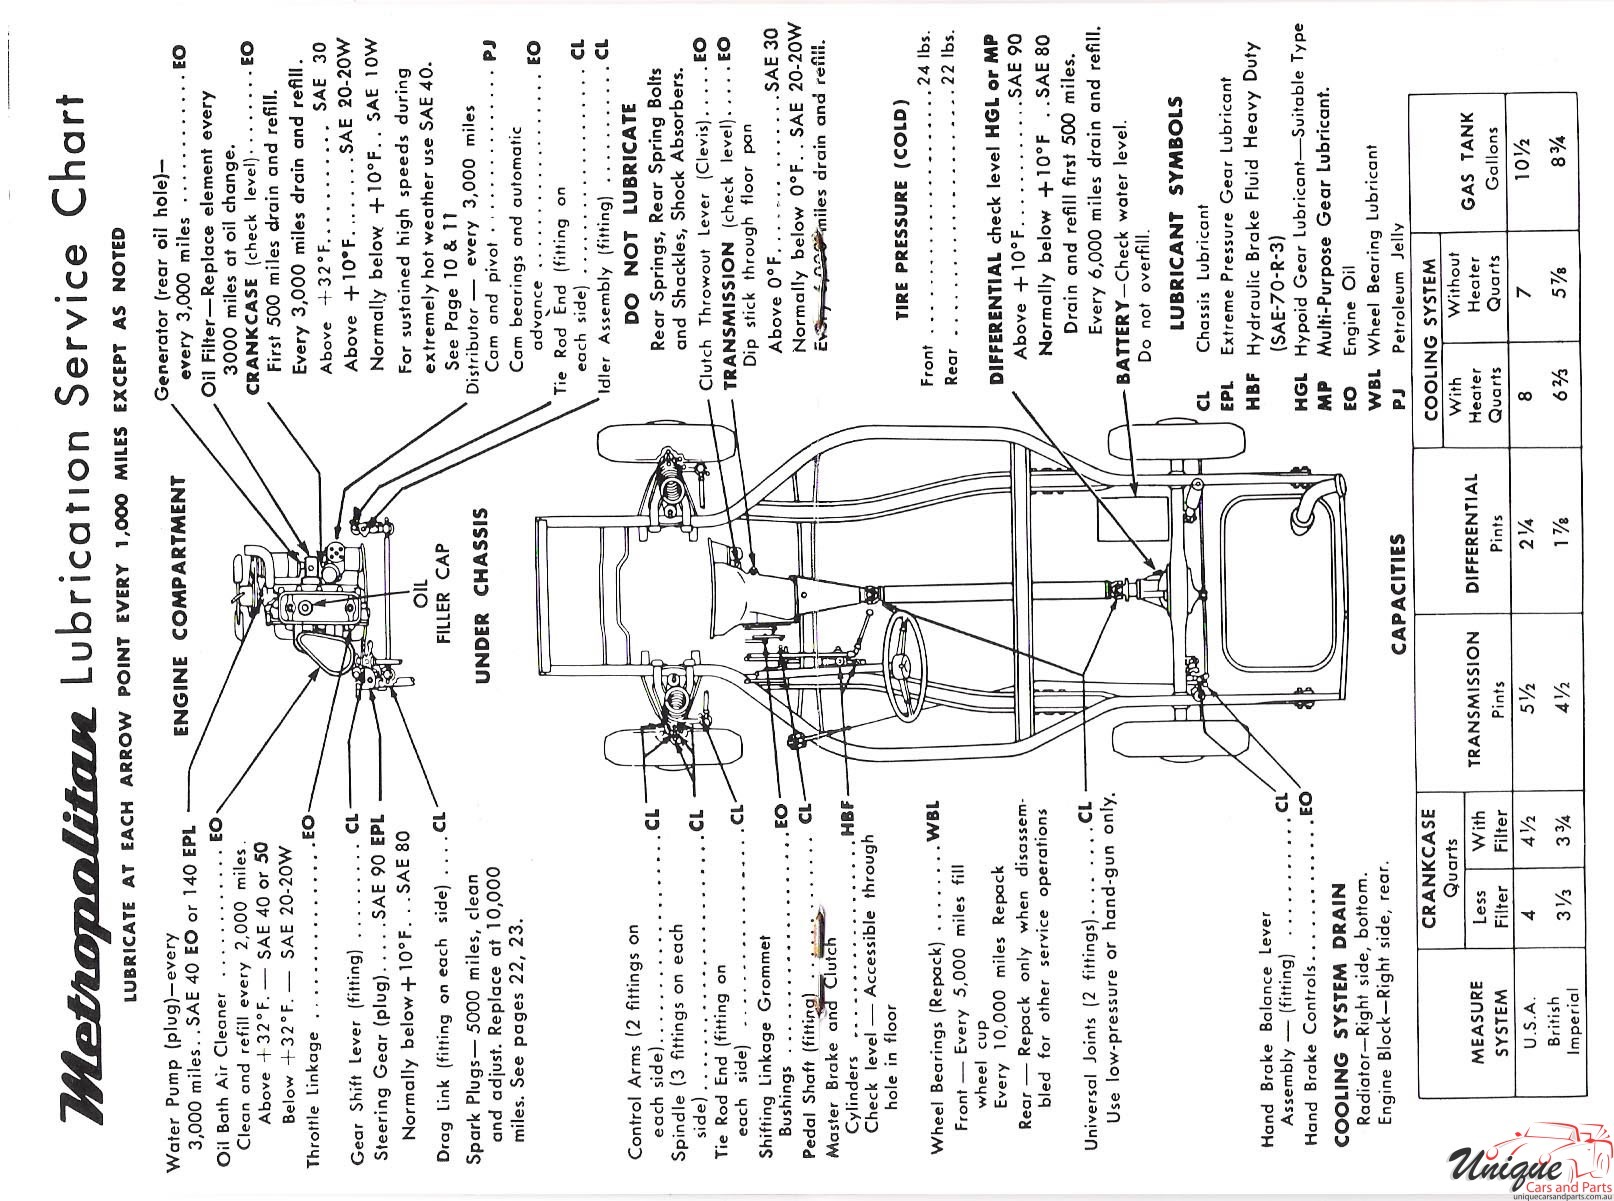 1957 Nash Metropolitan Owners Manual